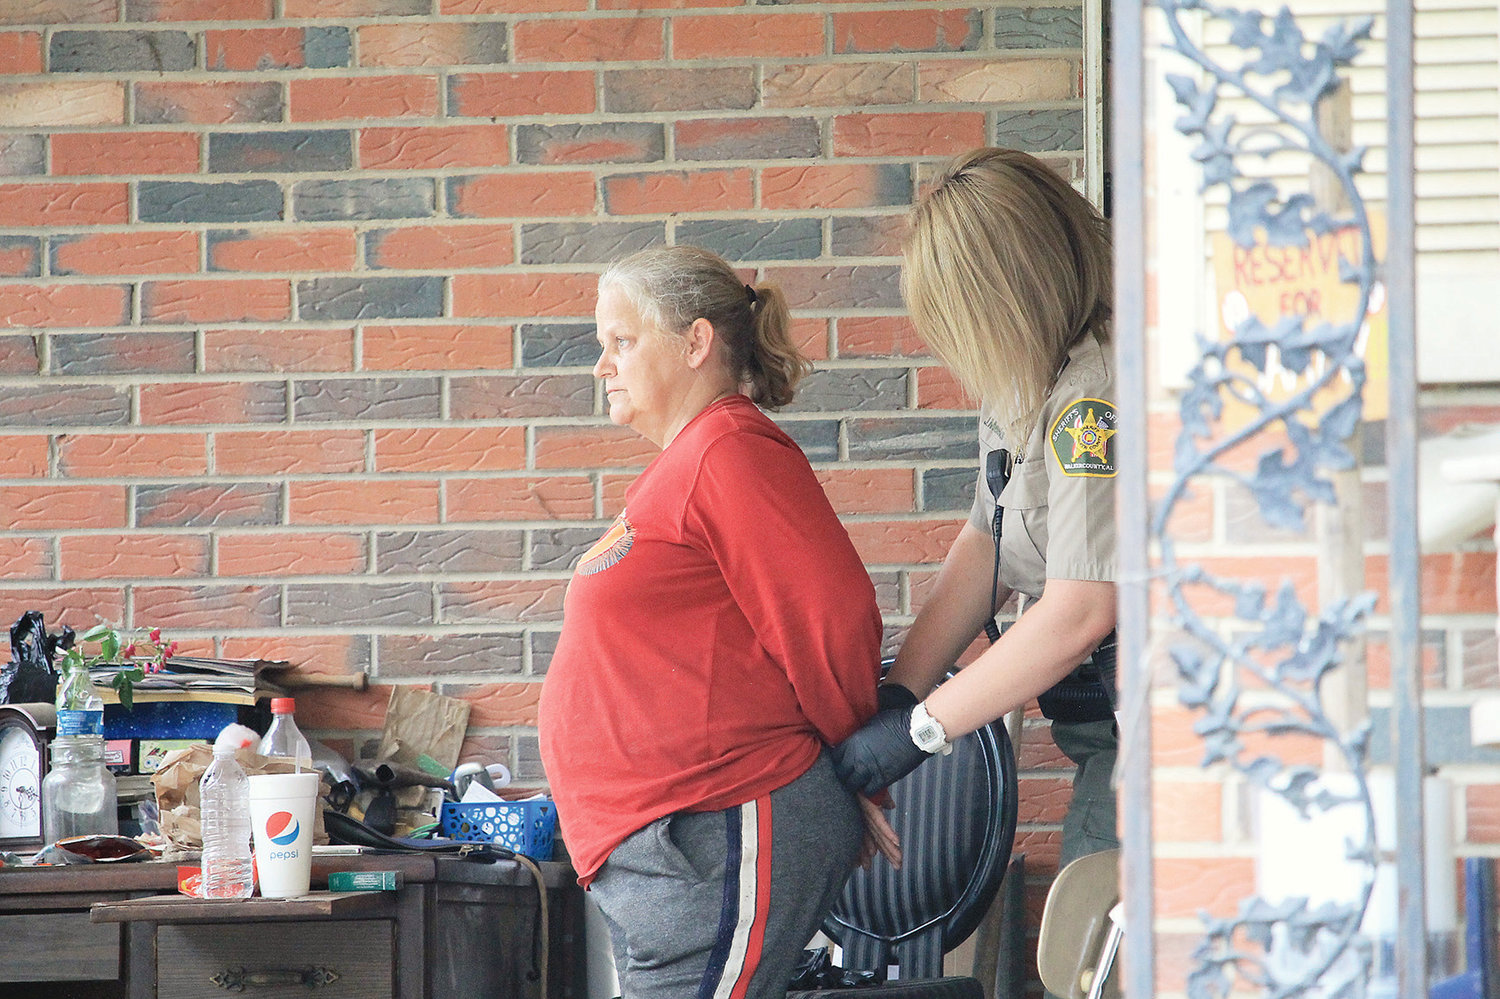 Ten people were arrested on drug charges Wednesday when the Walker County Sheriff's Office's Patrol and Narcotic divisions executed several search warrants in Oakman.